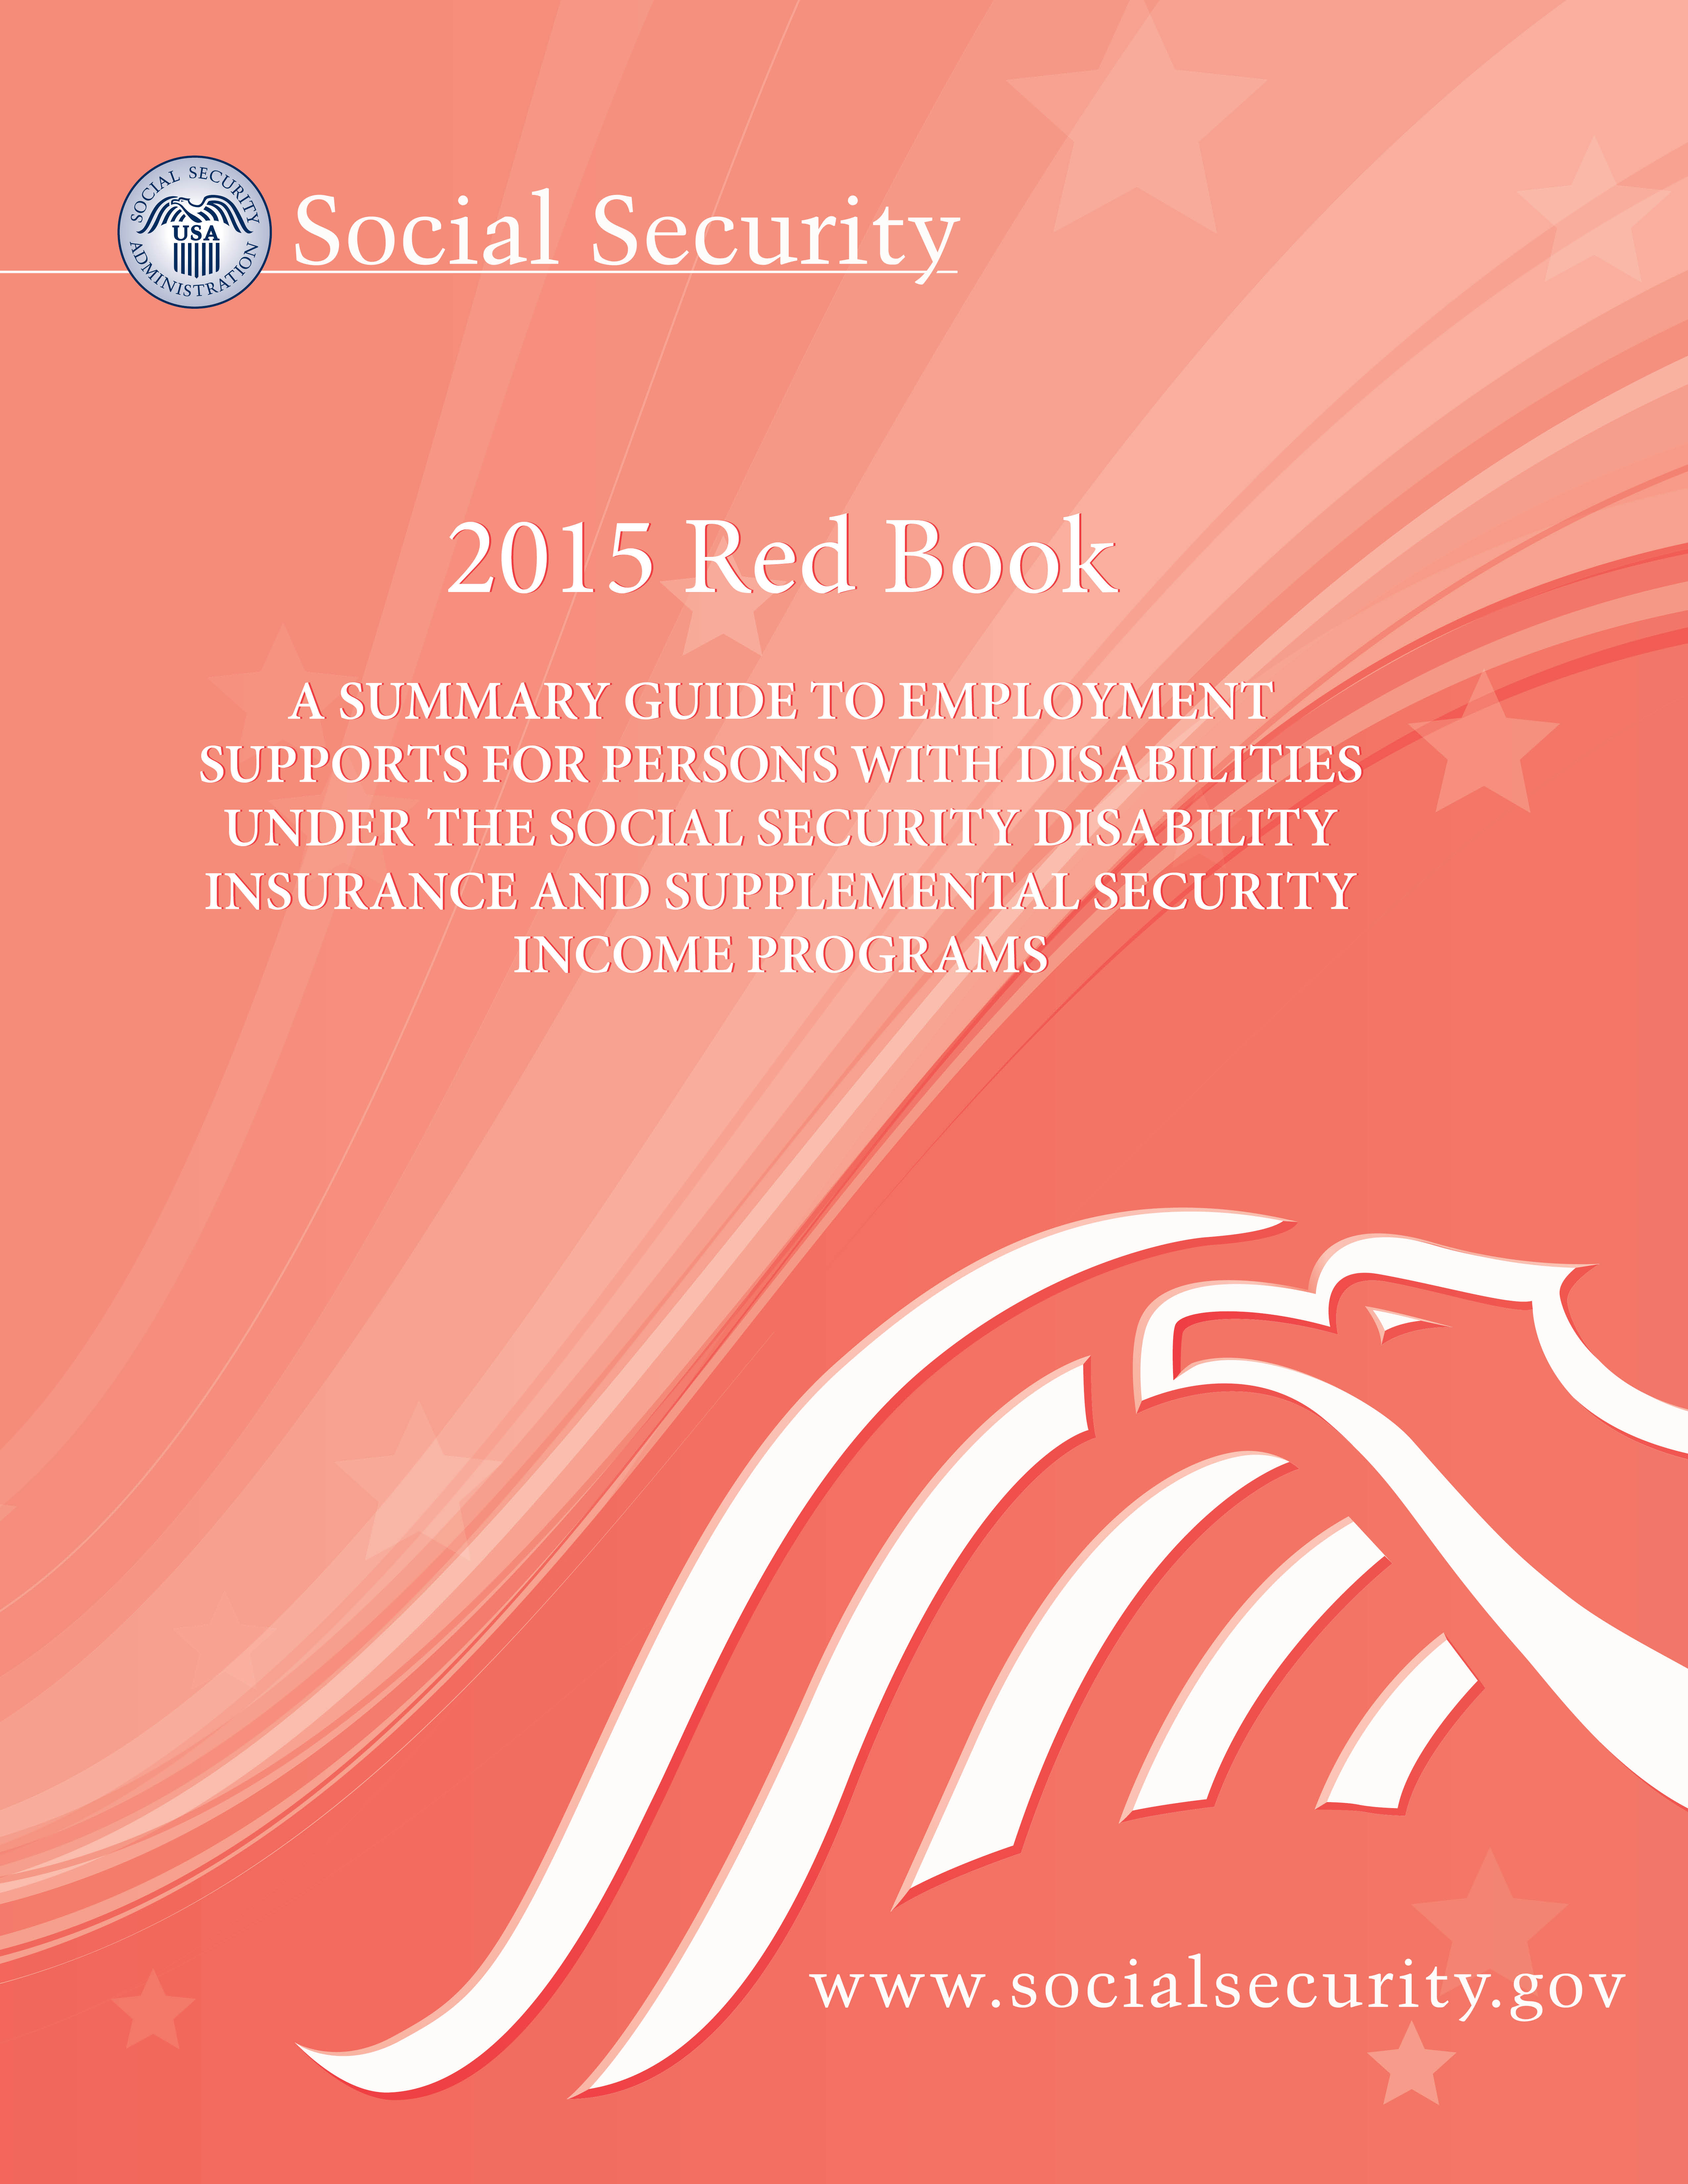 Cover of the 2015 Red Book Summary Guide to Supports for People with Disabilities under SSI and SSDI